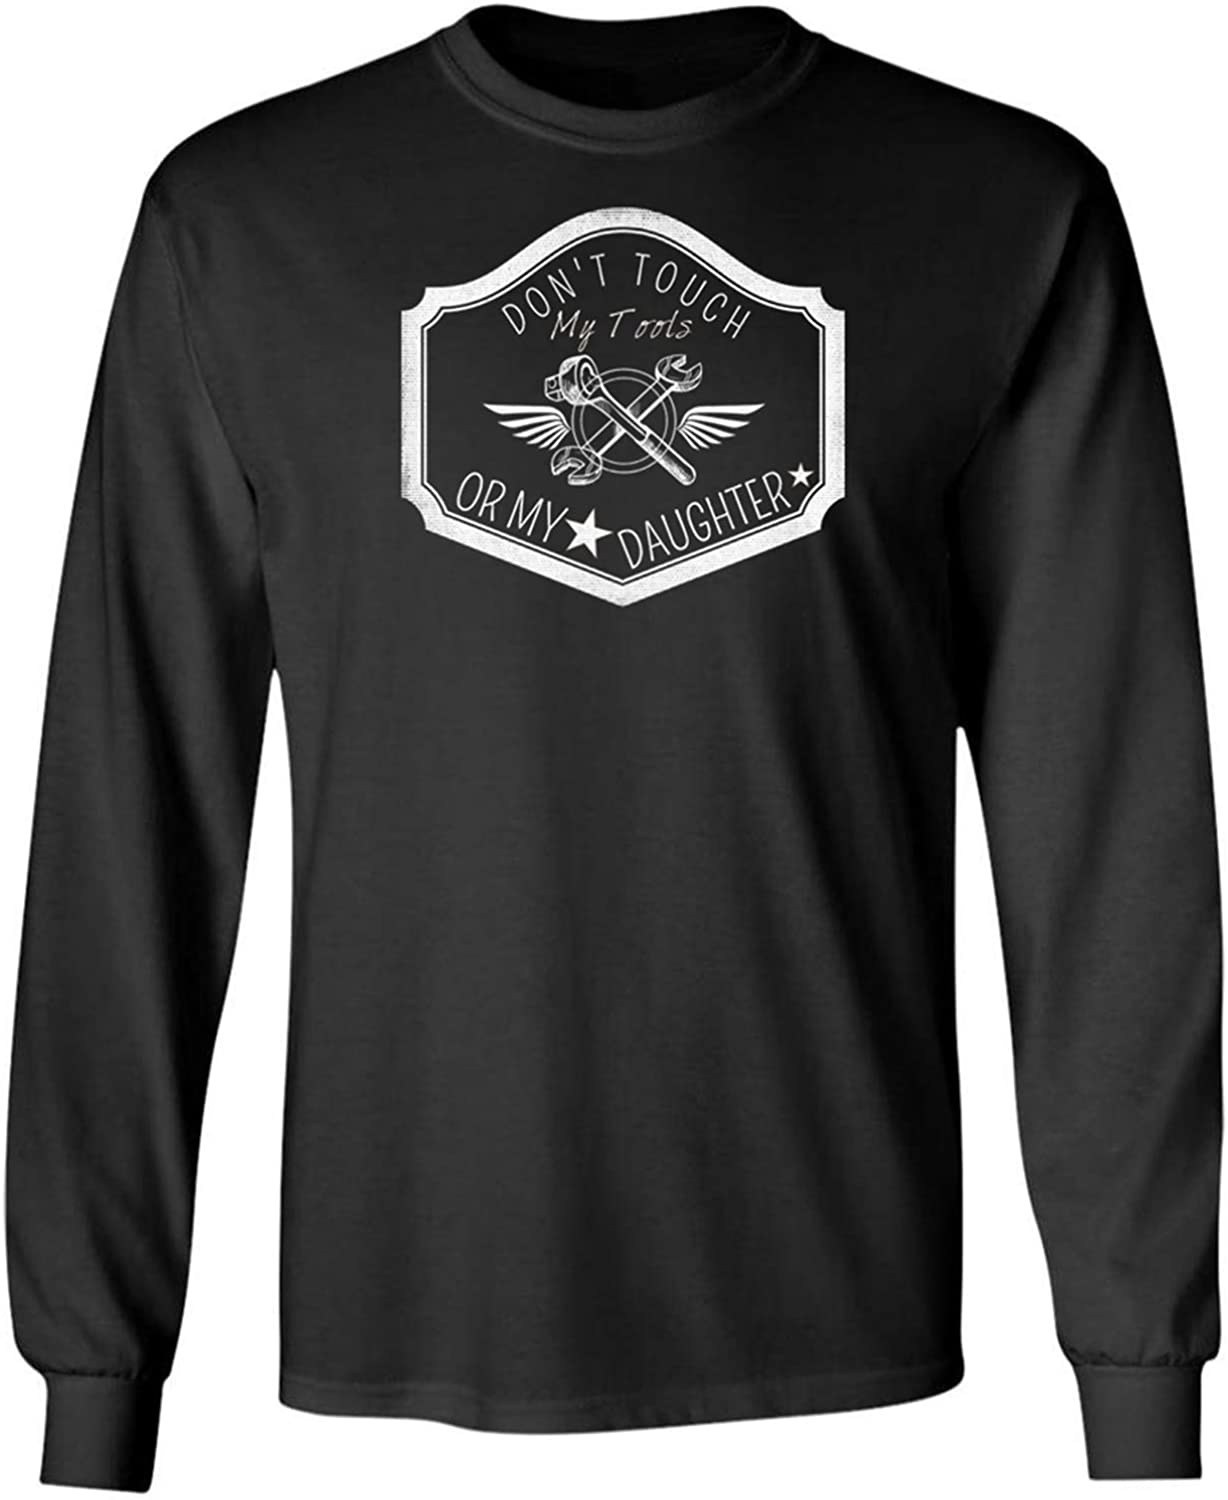 - Teechopchop Mechanic Dad Engineer Engineer Engineer Gift,Don't Long Sleeve Shirt 6efc4a